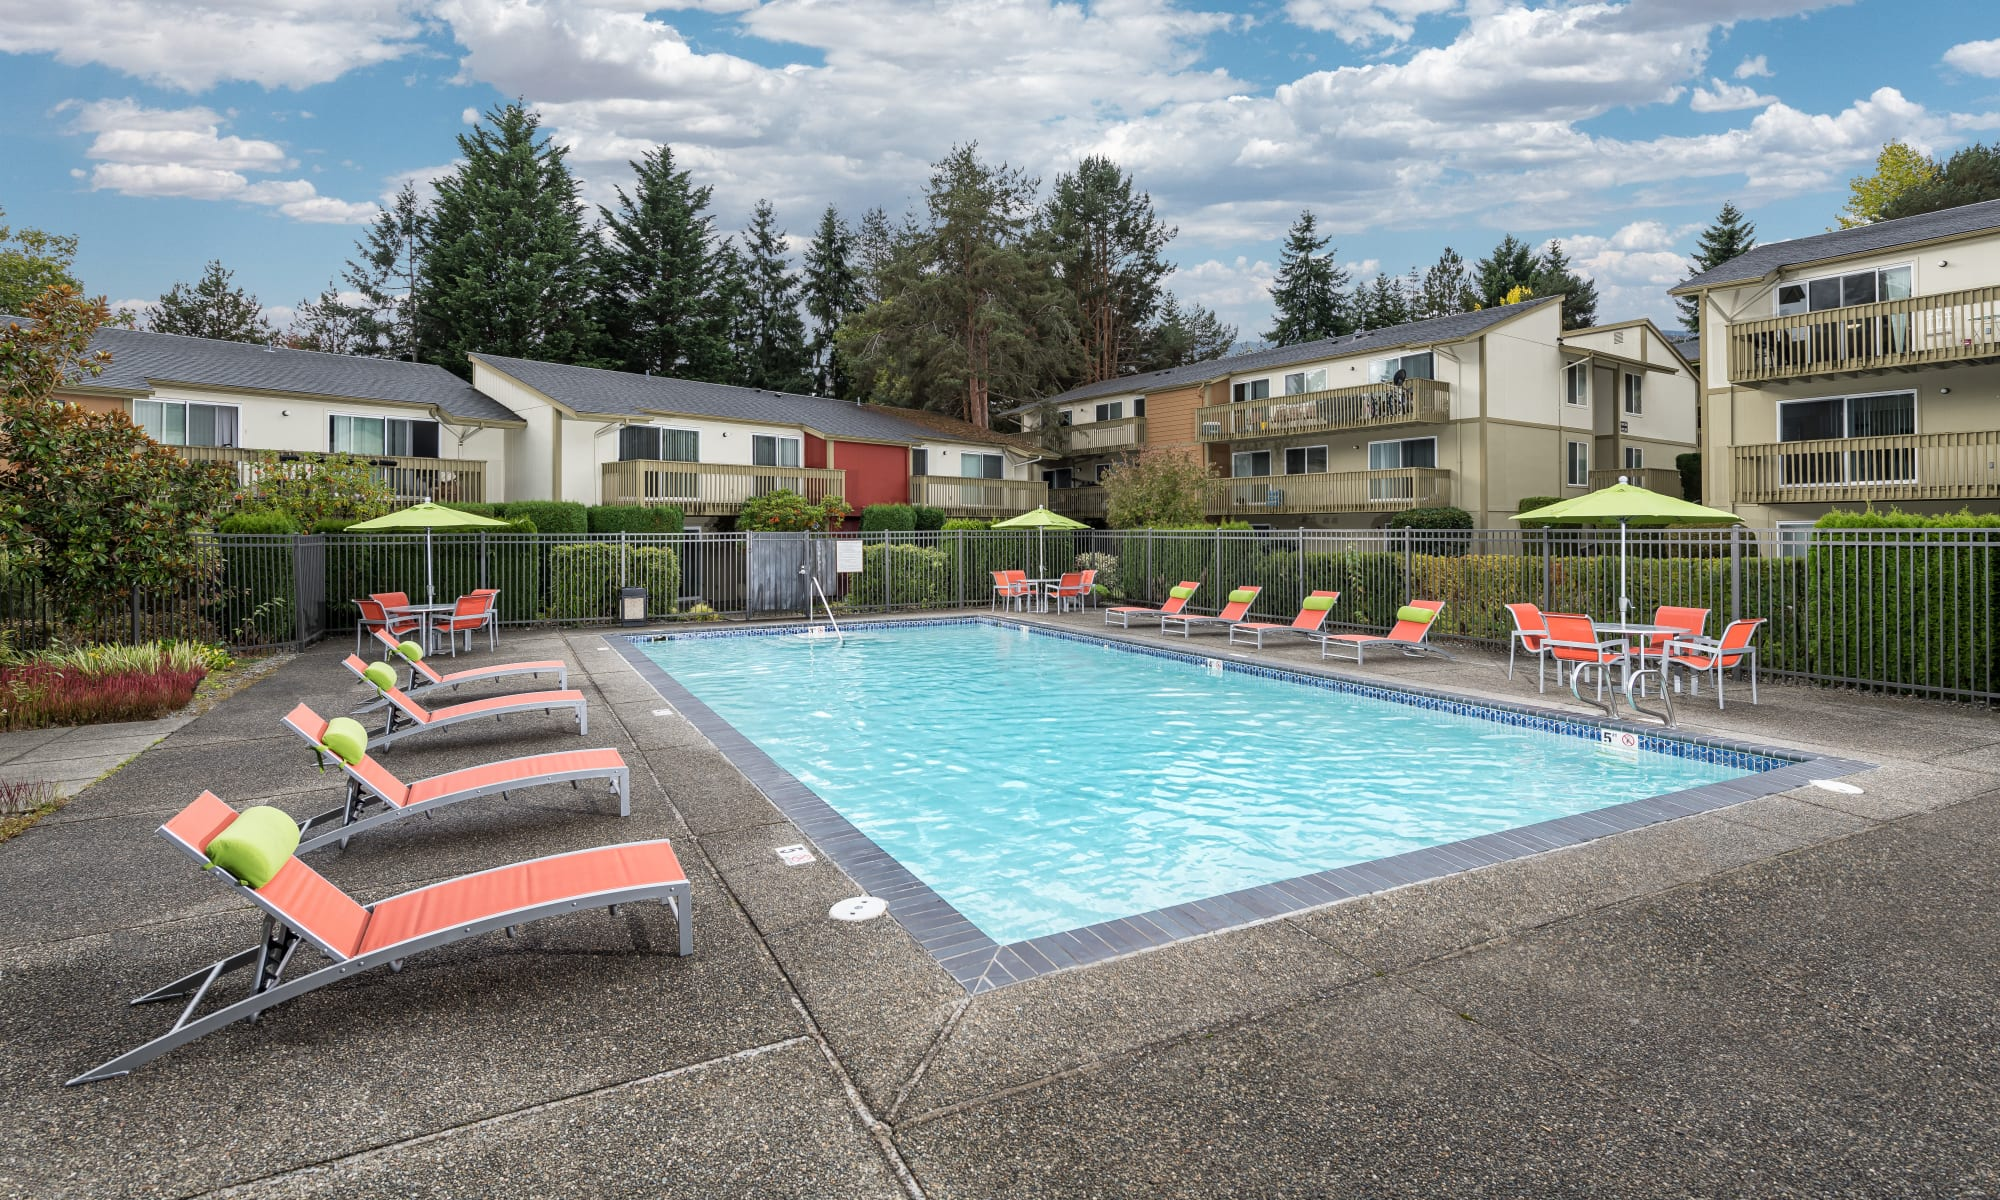 Photos of Edgewood Park Apartments in Bellevue, Washington